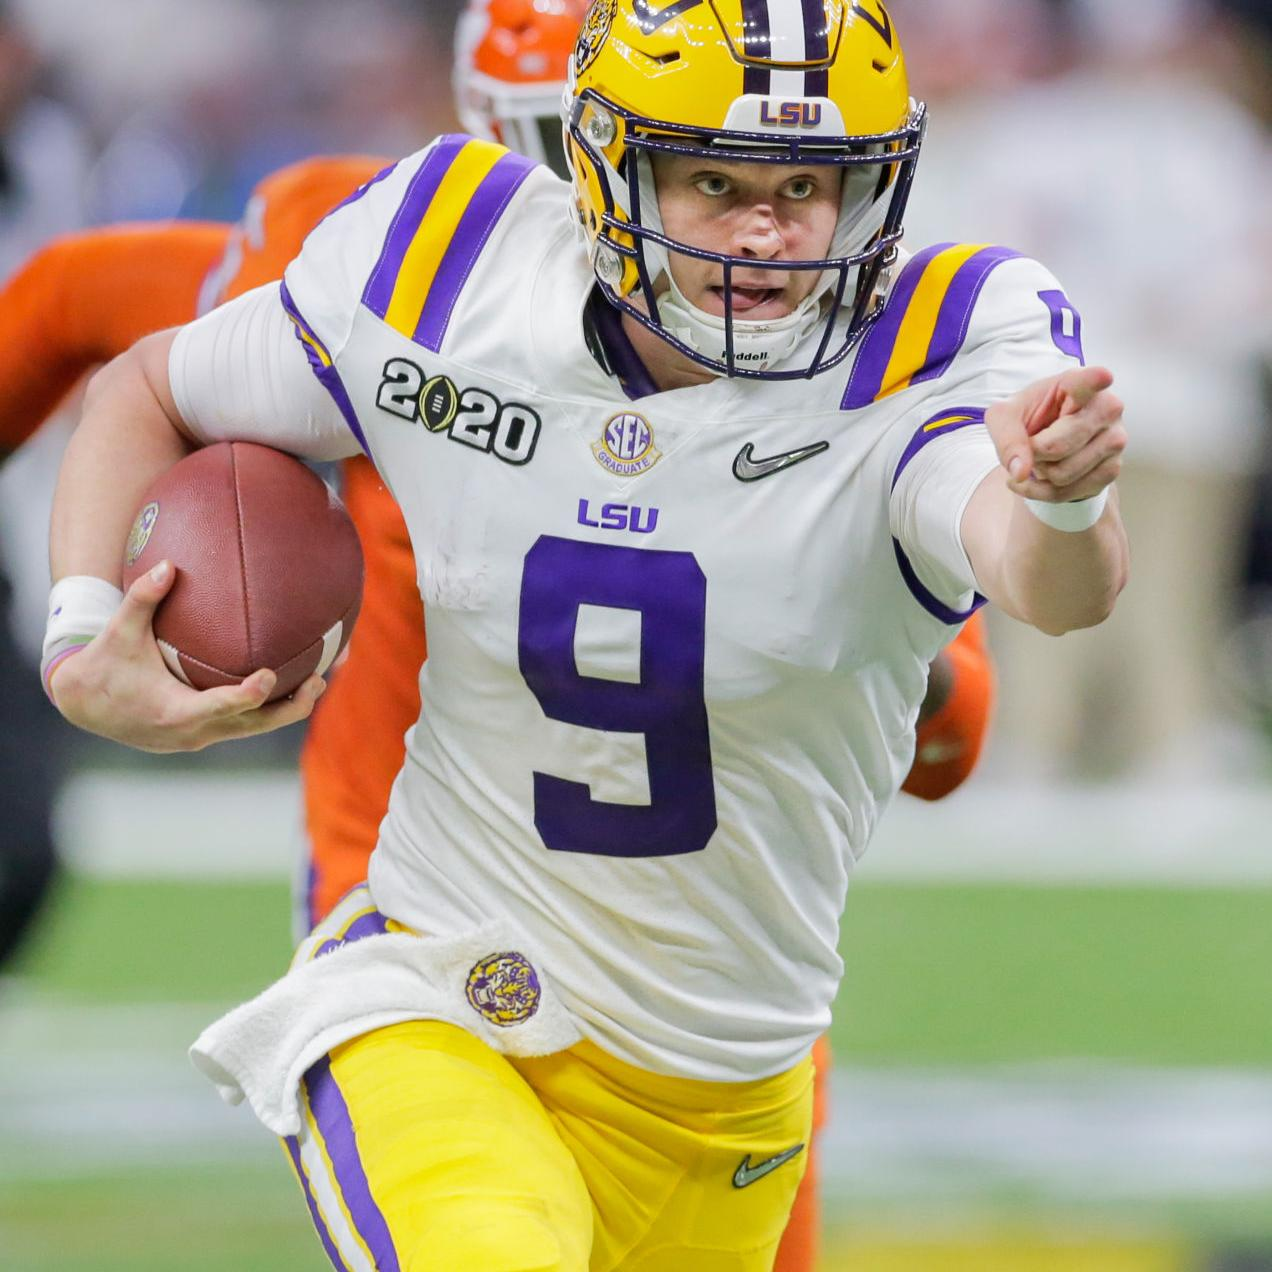 Rabalais With No 1 Pick Joe Burrow Moves Into Another Realm Of Lsu Football Glory Lsu Theadvocate Com